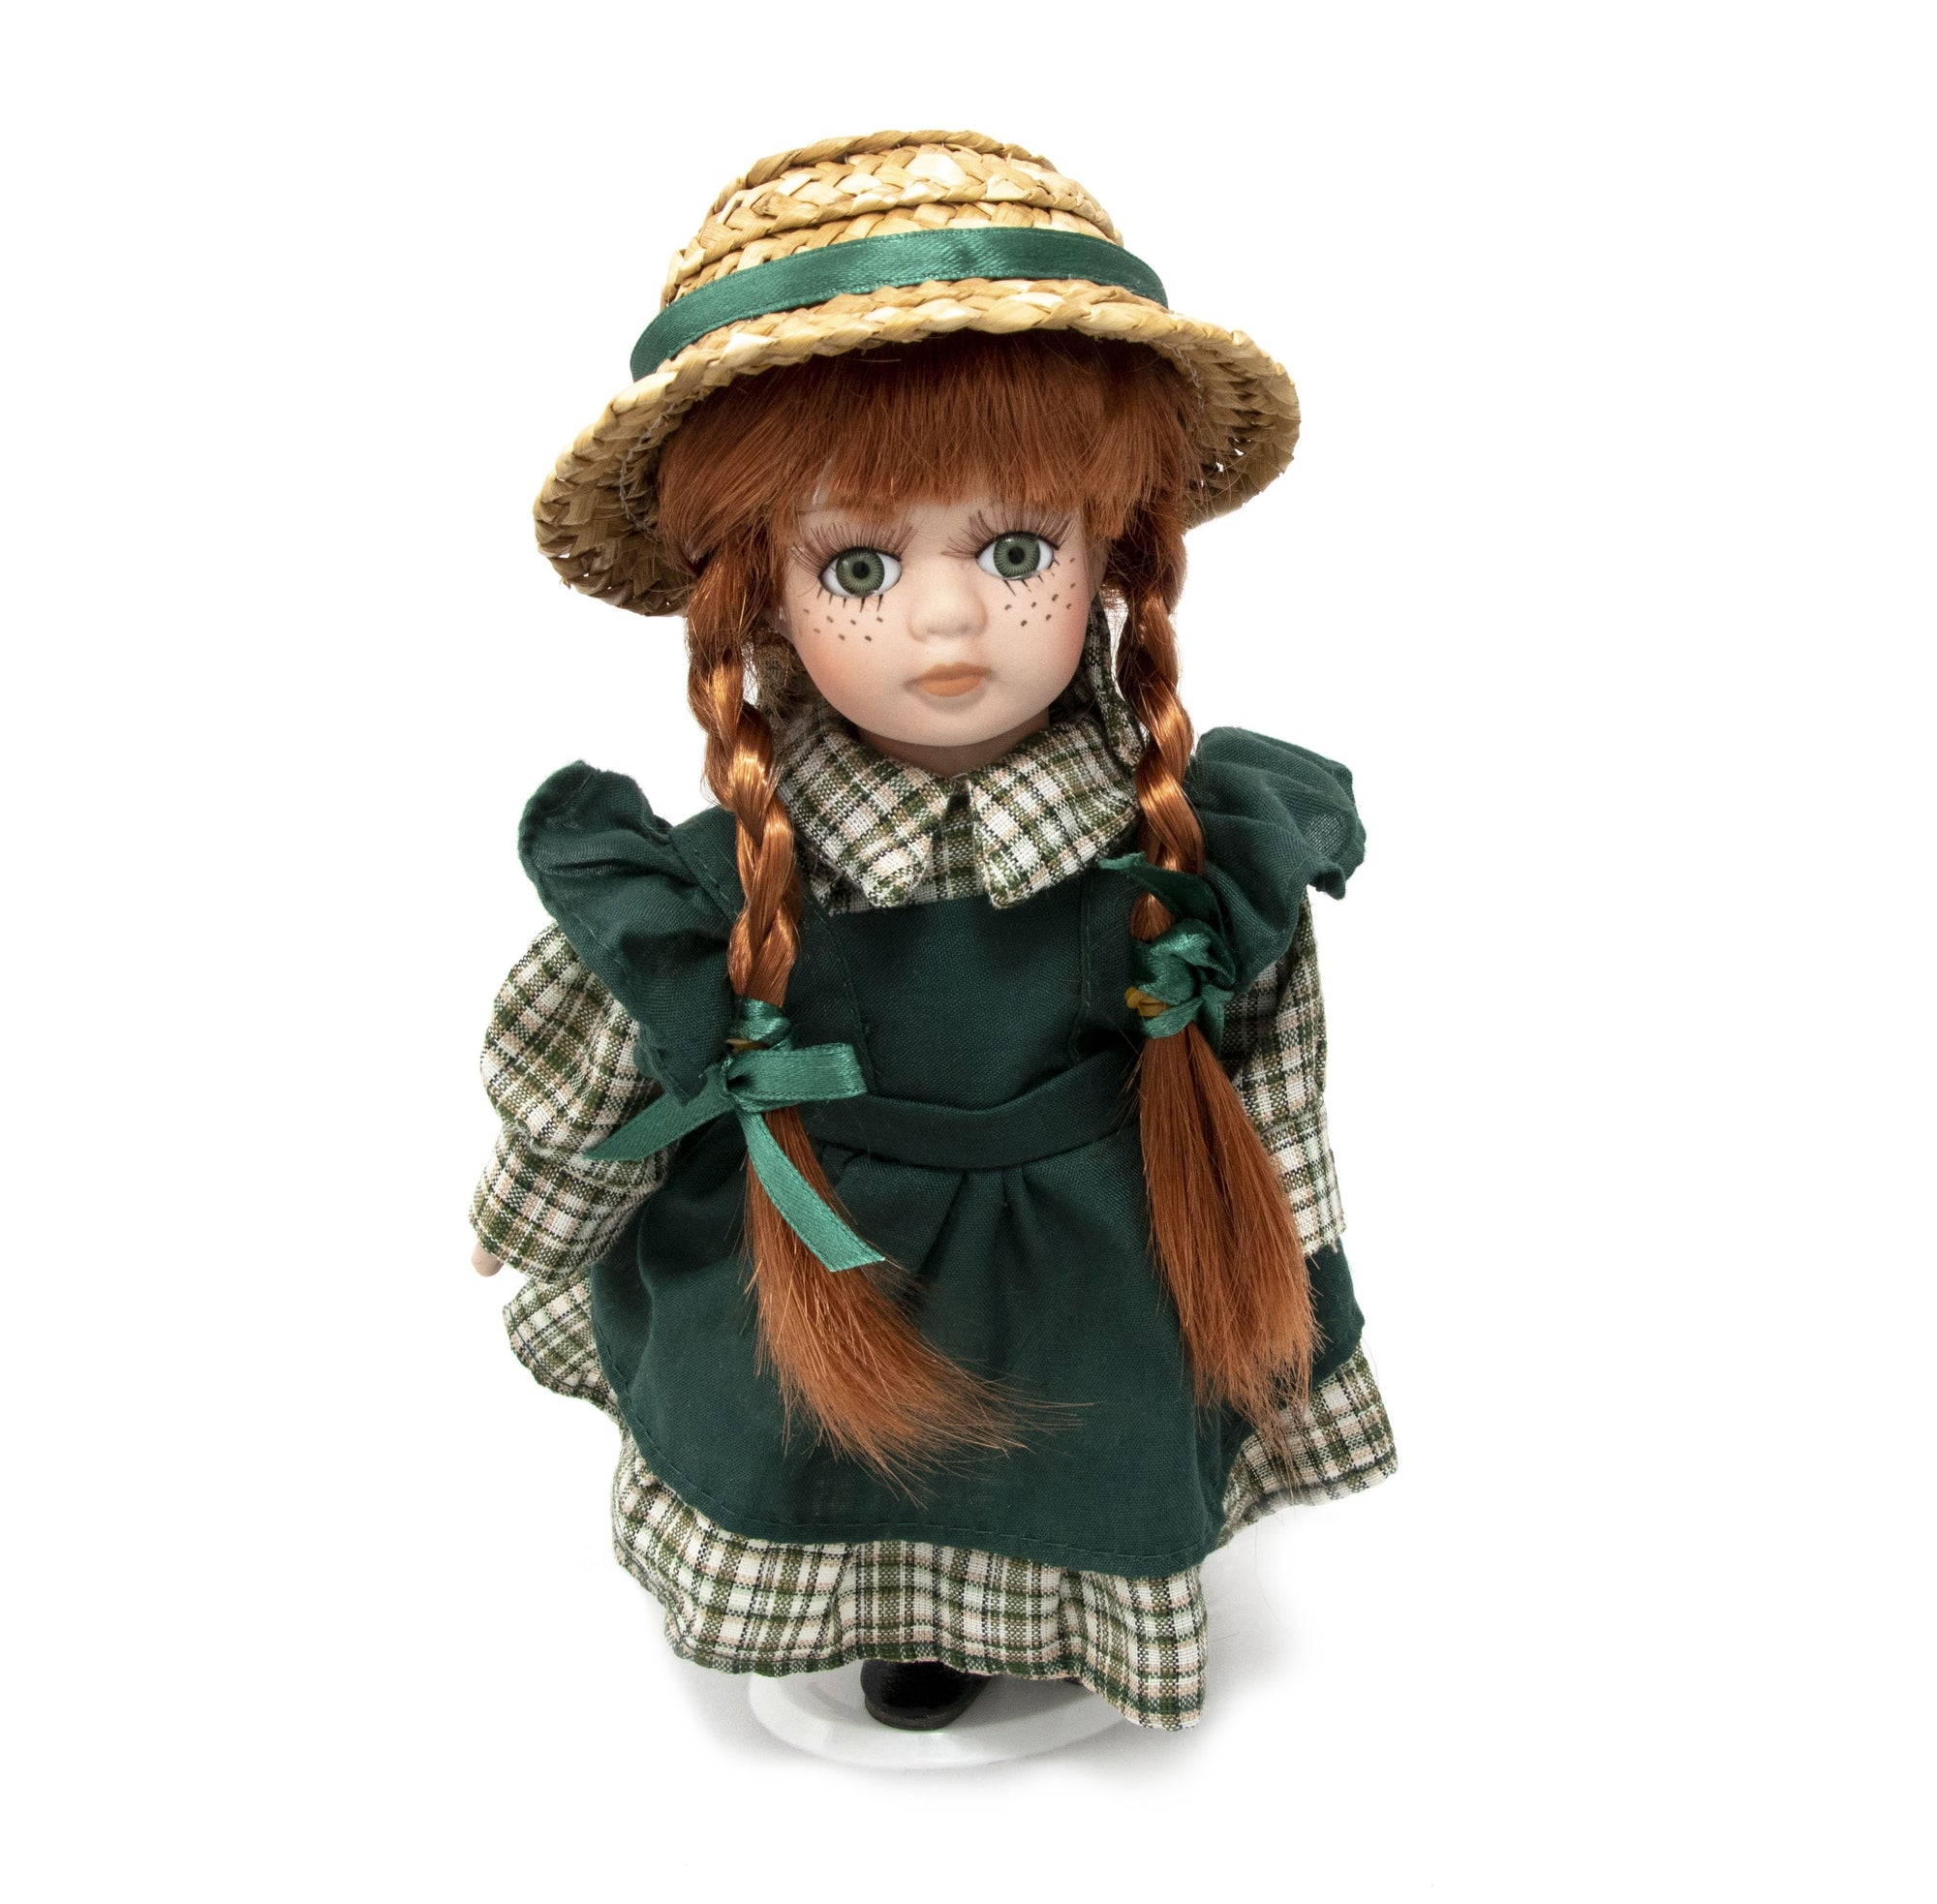 'Our Anne' 8 inch Porcelain Doll Anne Of Green Gables